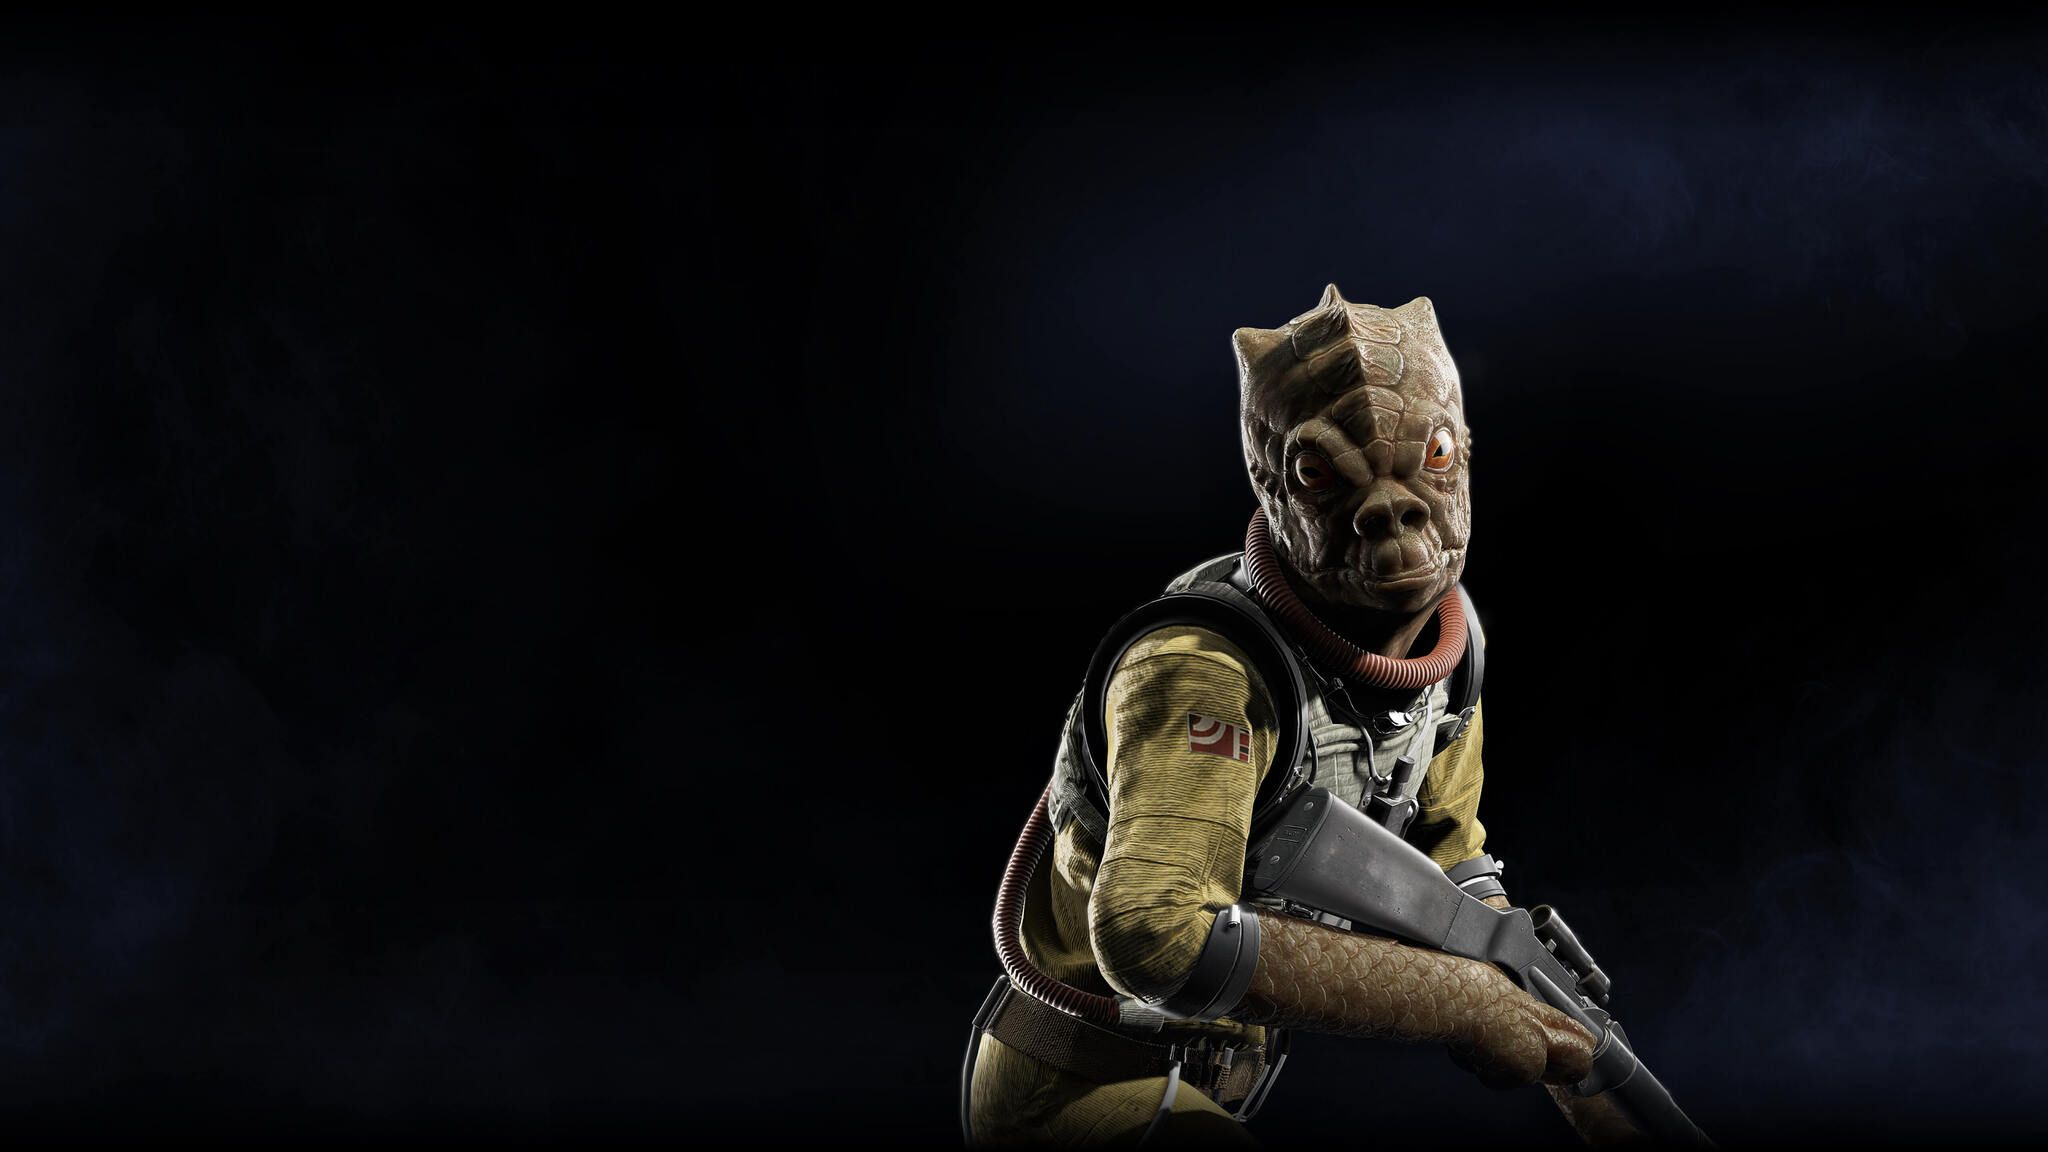 Bossk Wallpapers Wallpaper Cave